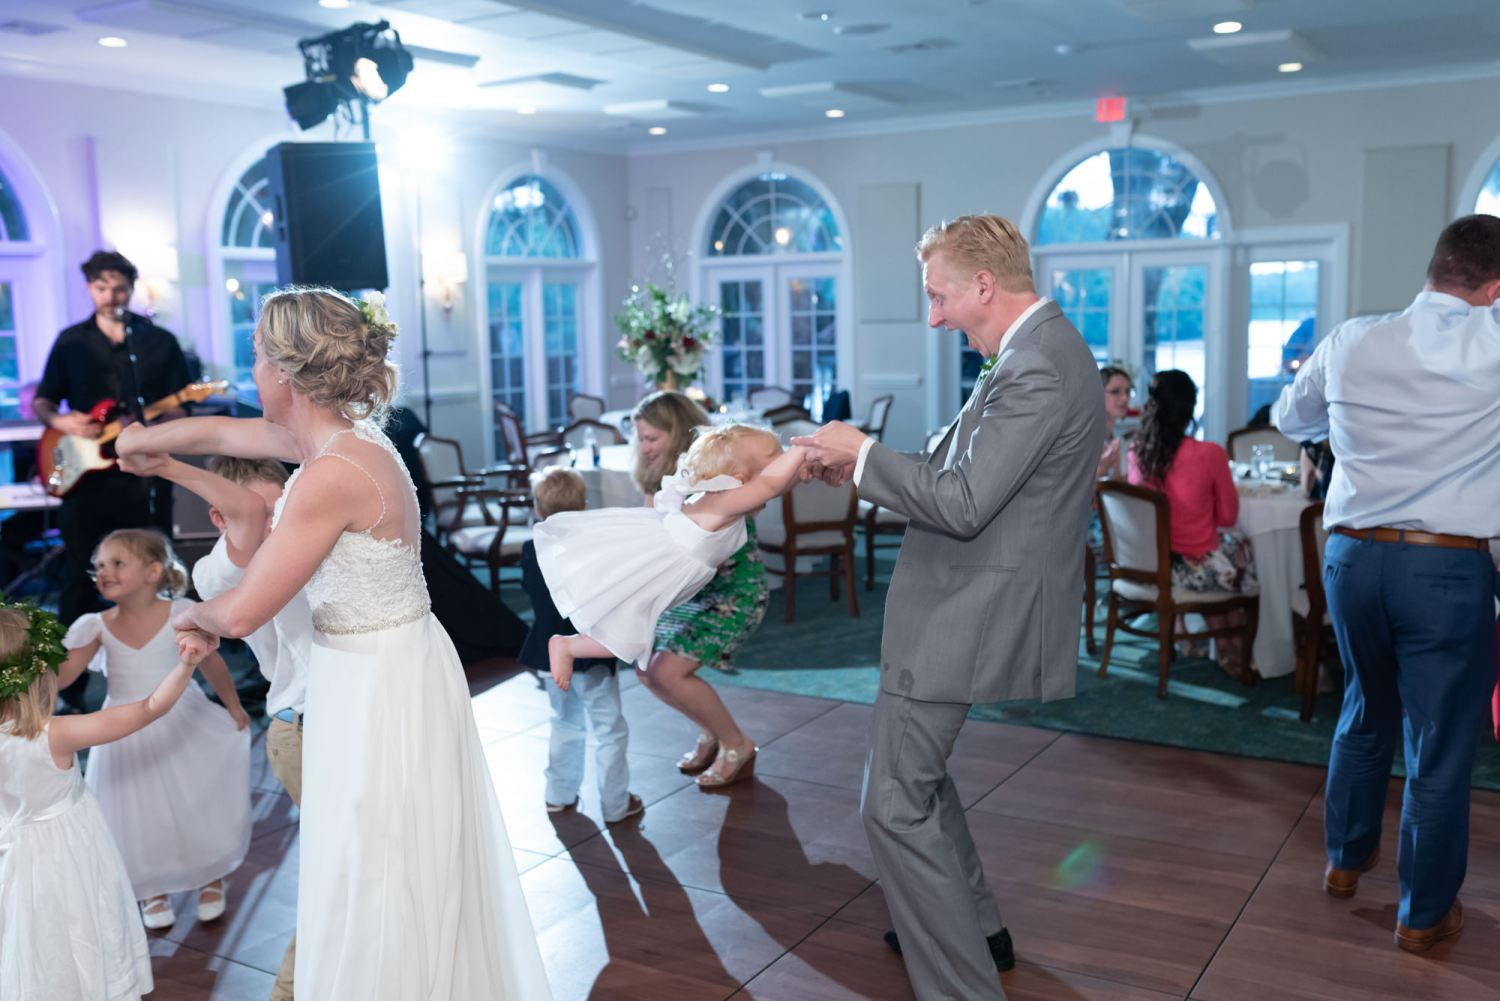 Dancing fun - Wachesaw Plantation